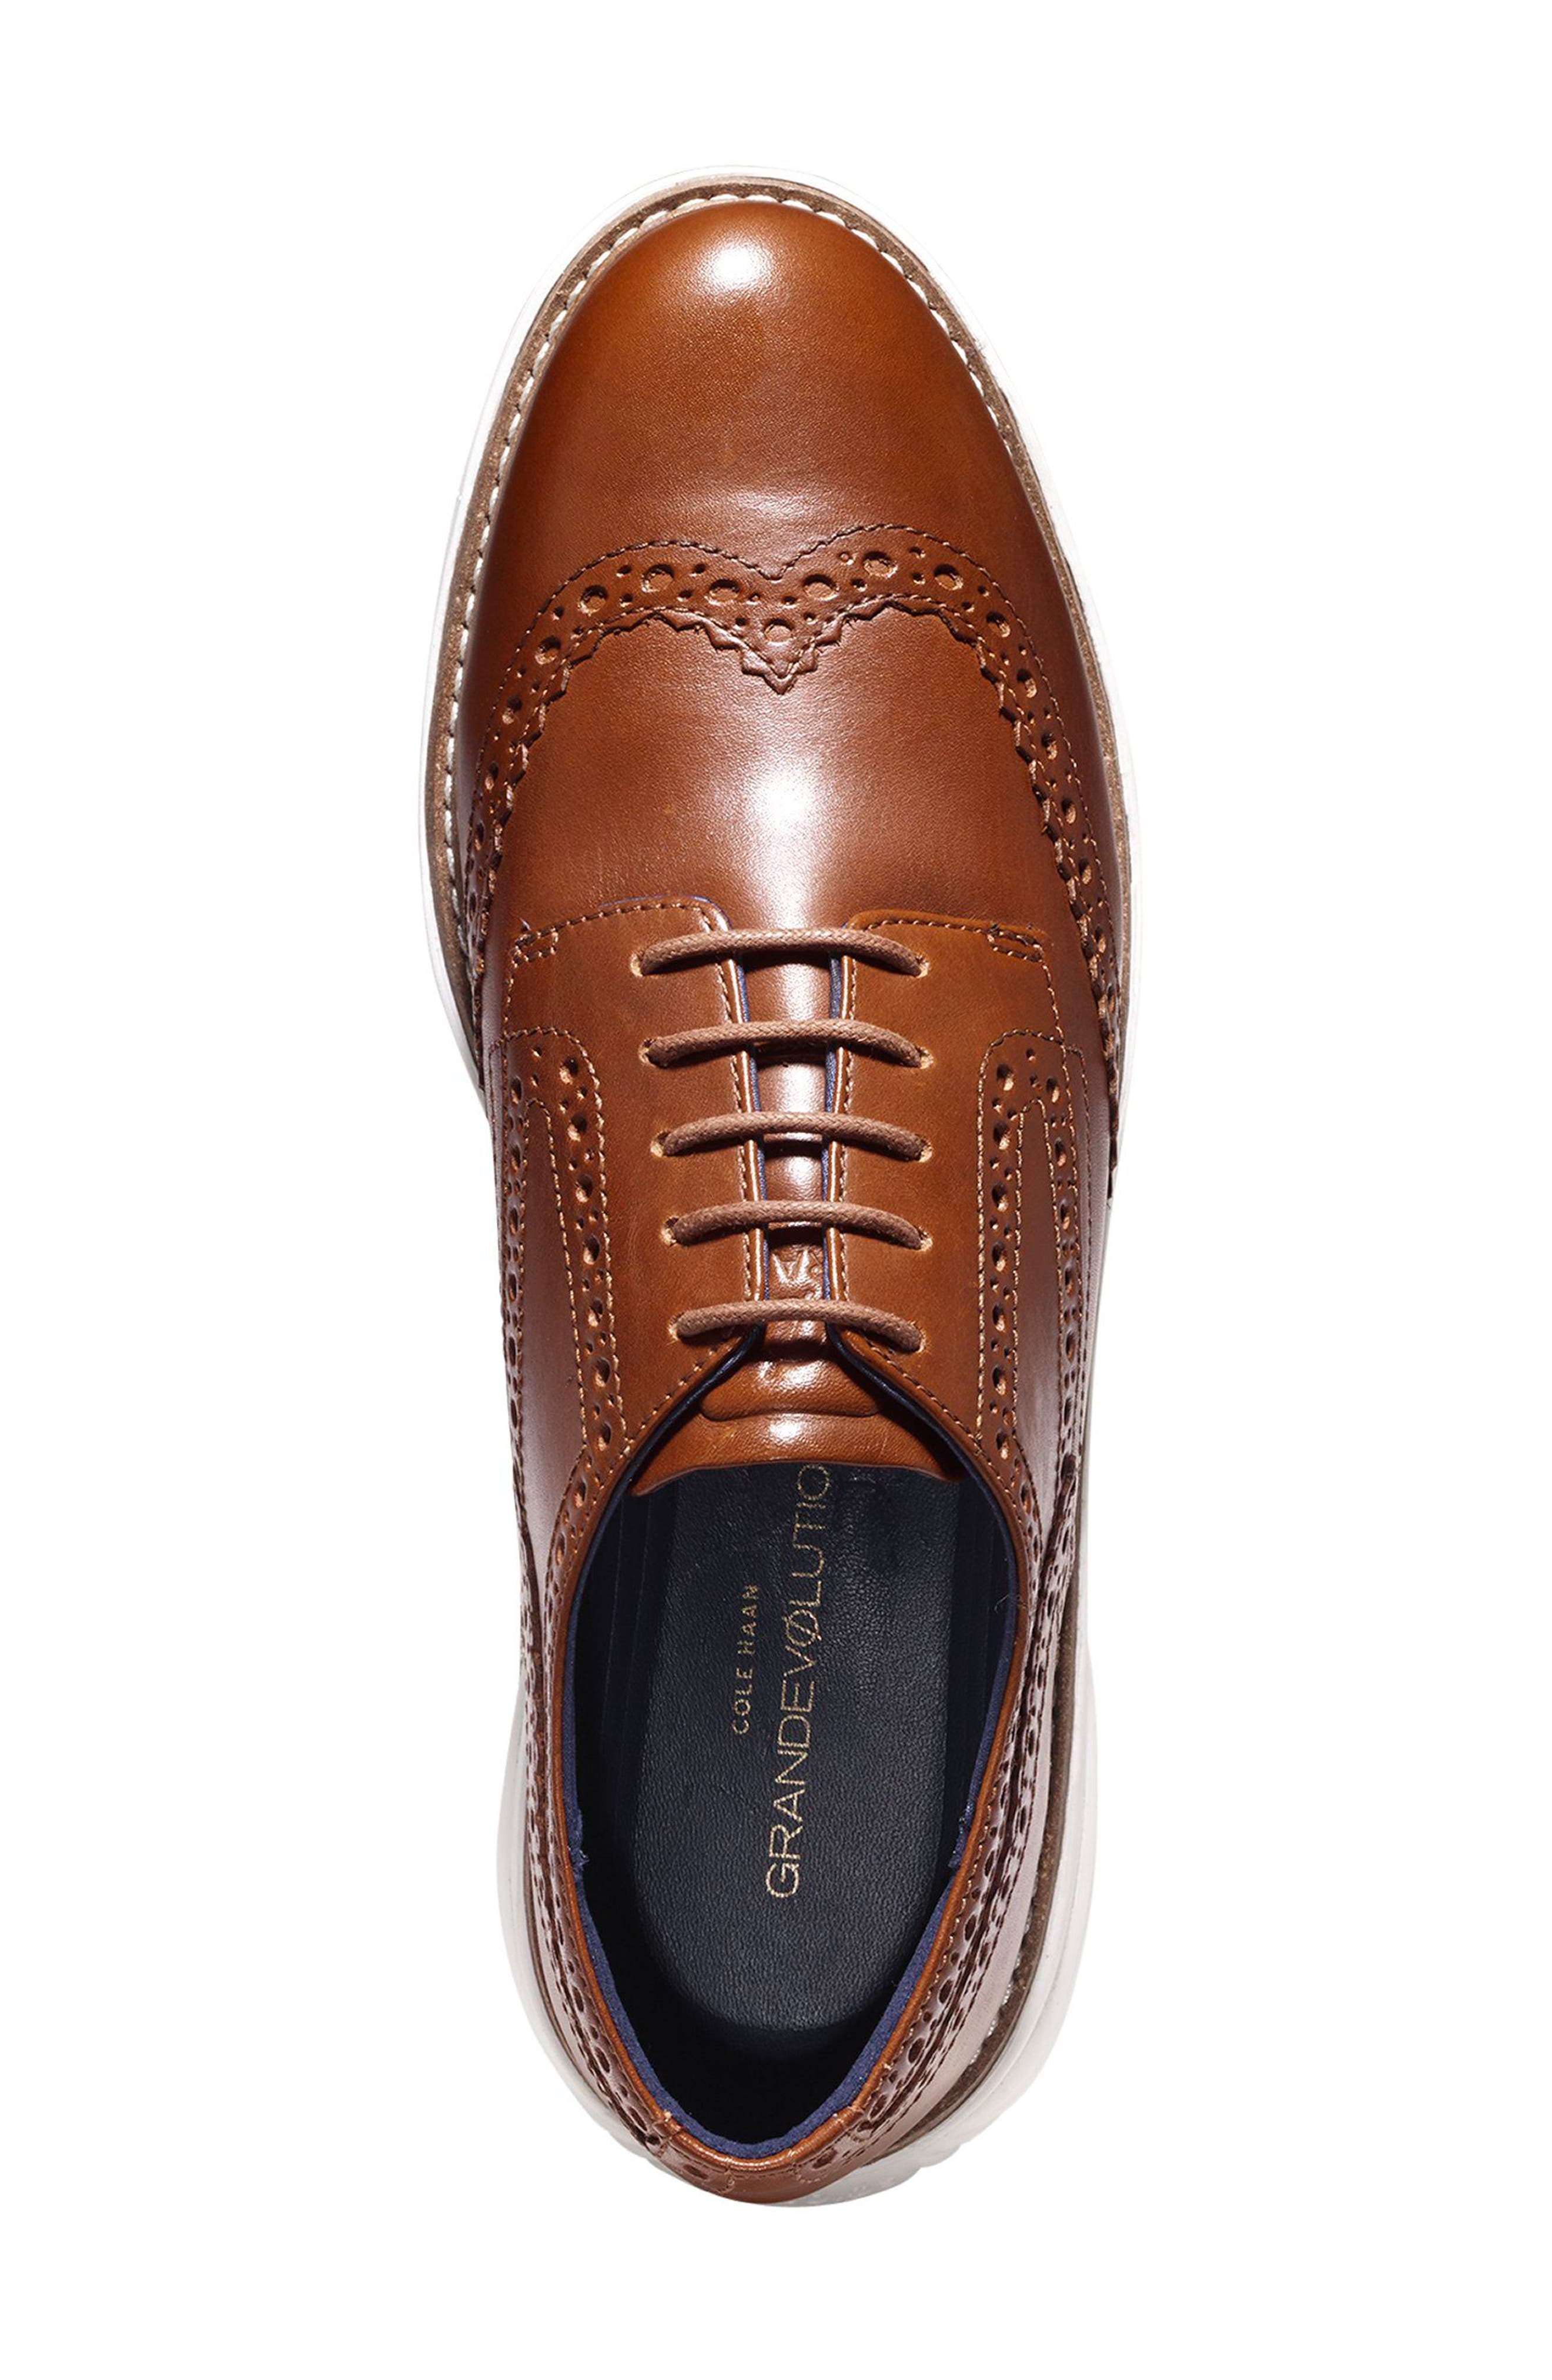 Grandevolution Shortwing Oxford Sneaker,                             Alternate thumbnail 4, color,                             WOODBURY LEATHER